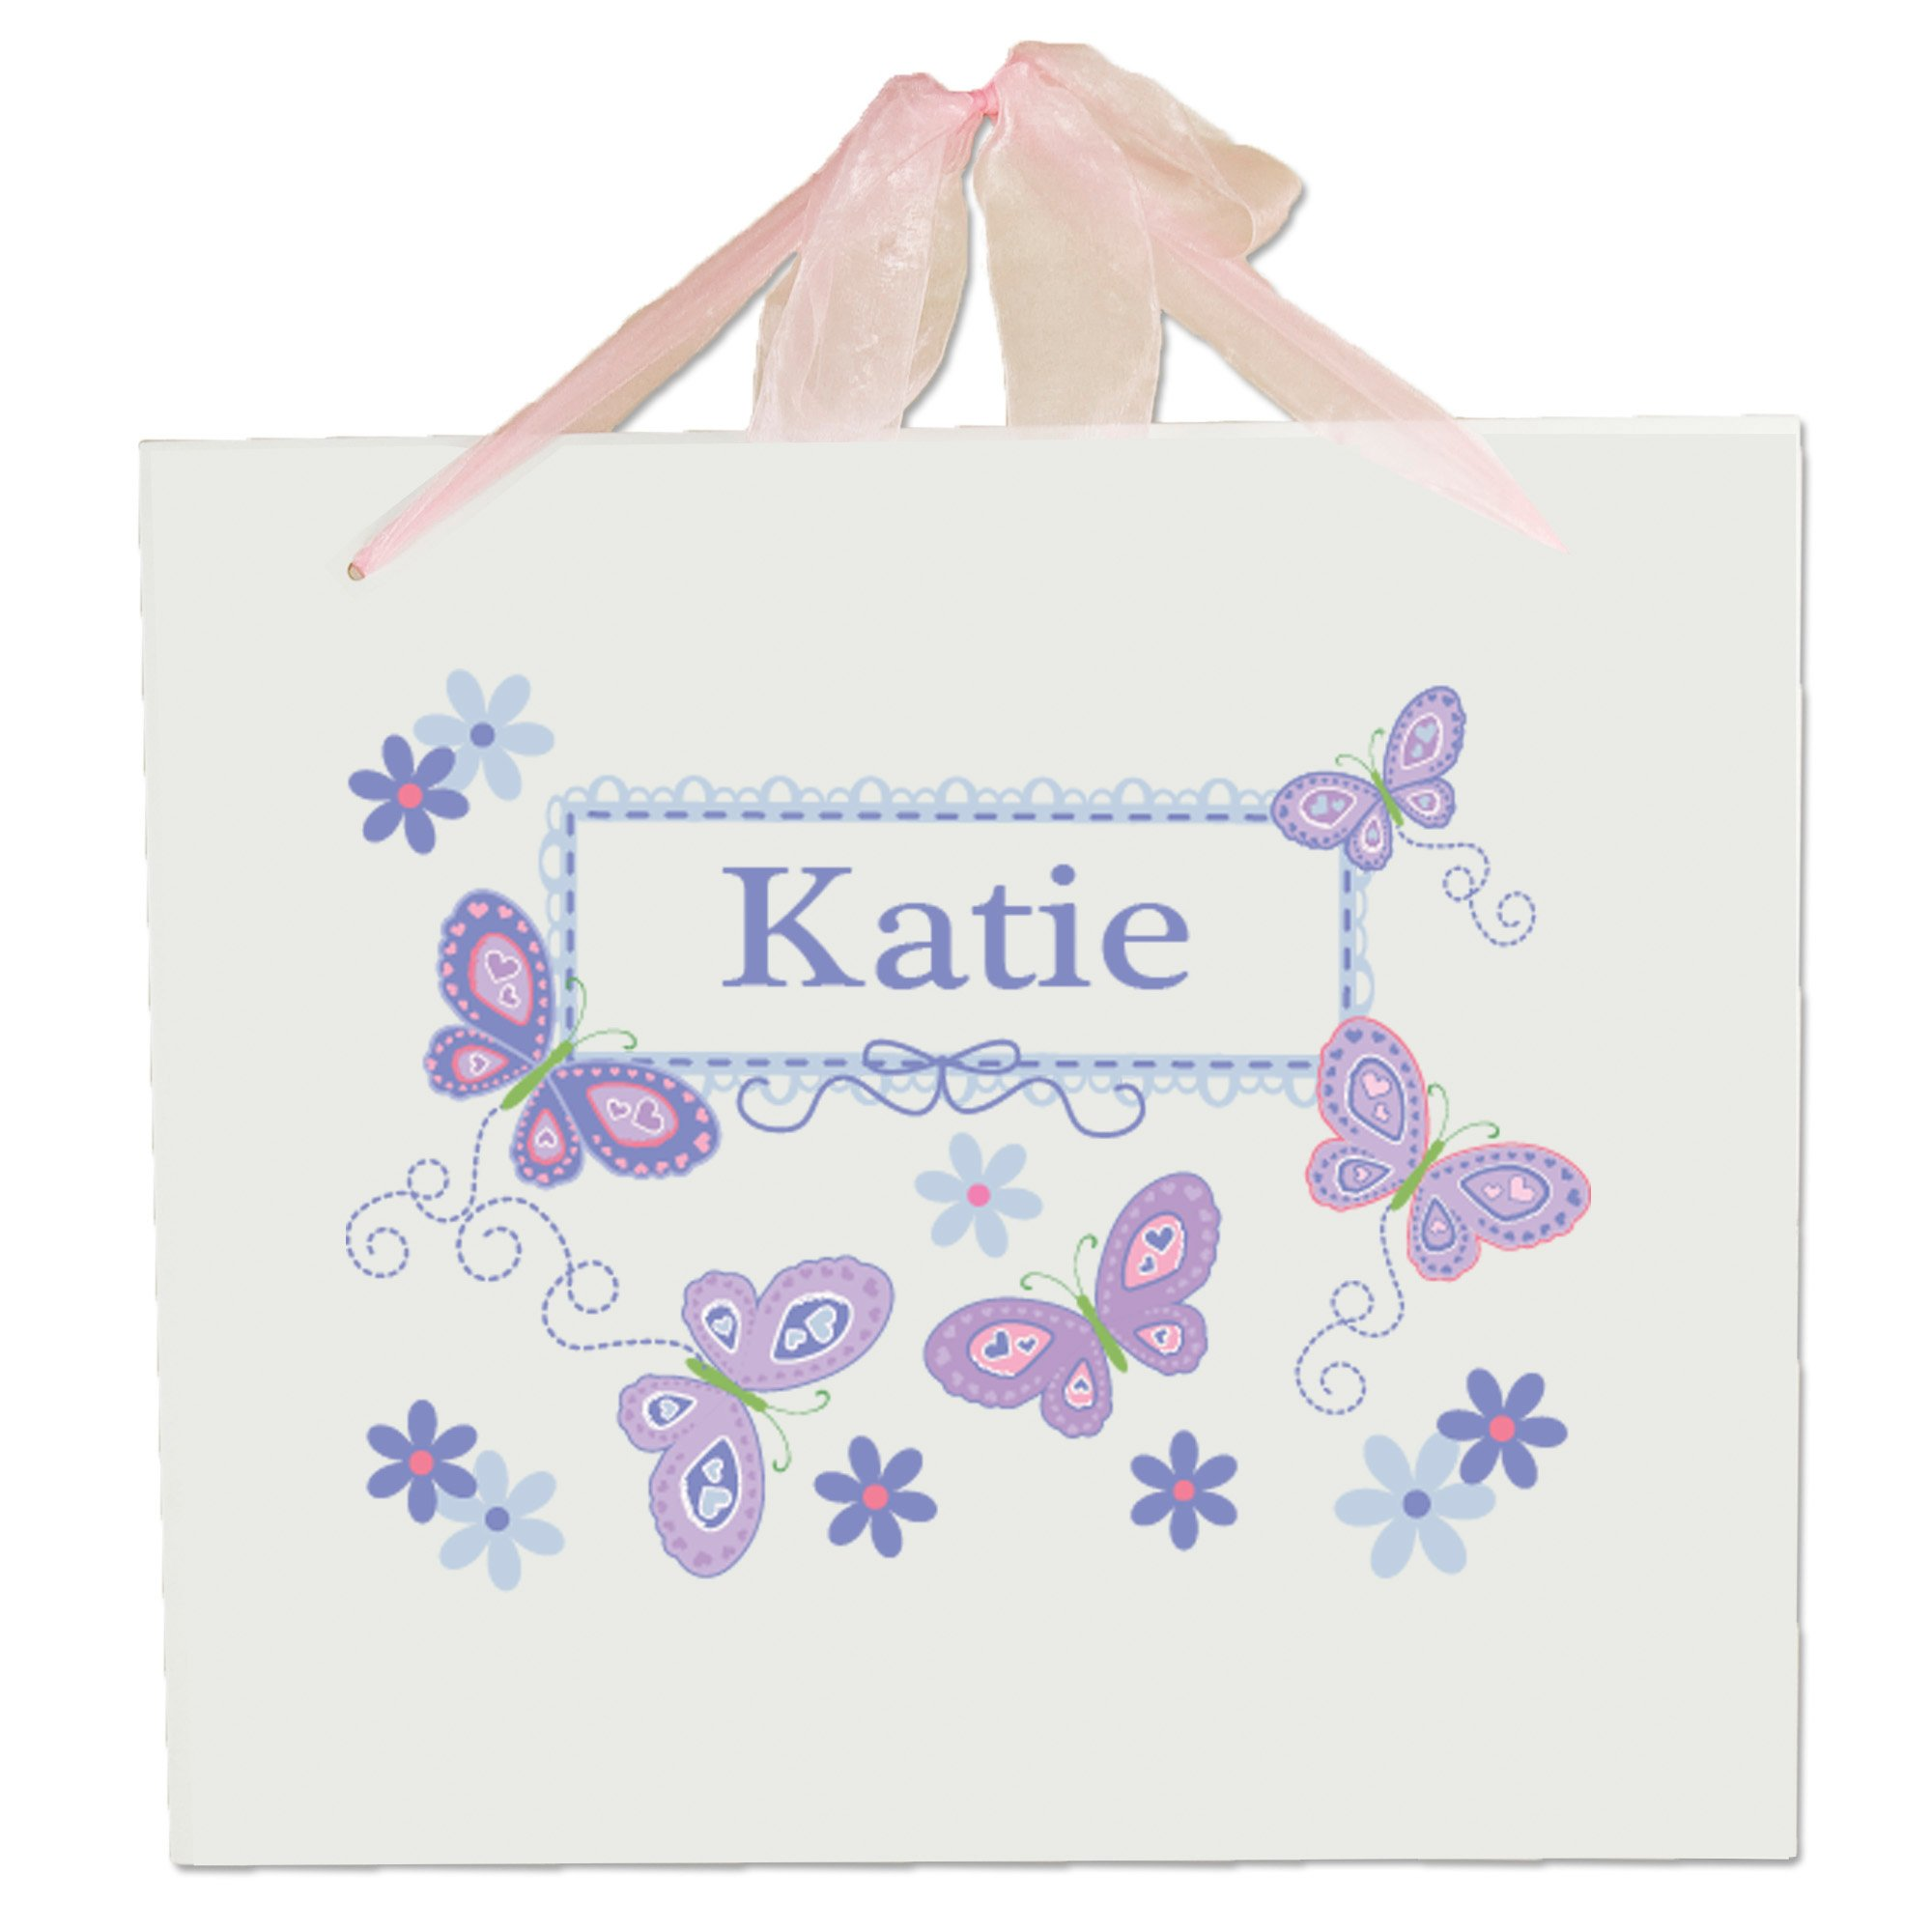 Personalized Girls Nursery Wall Sign with Lavender Butterflies Design